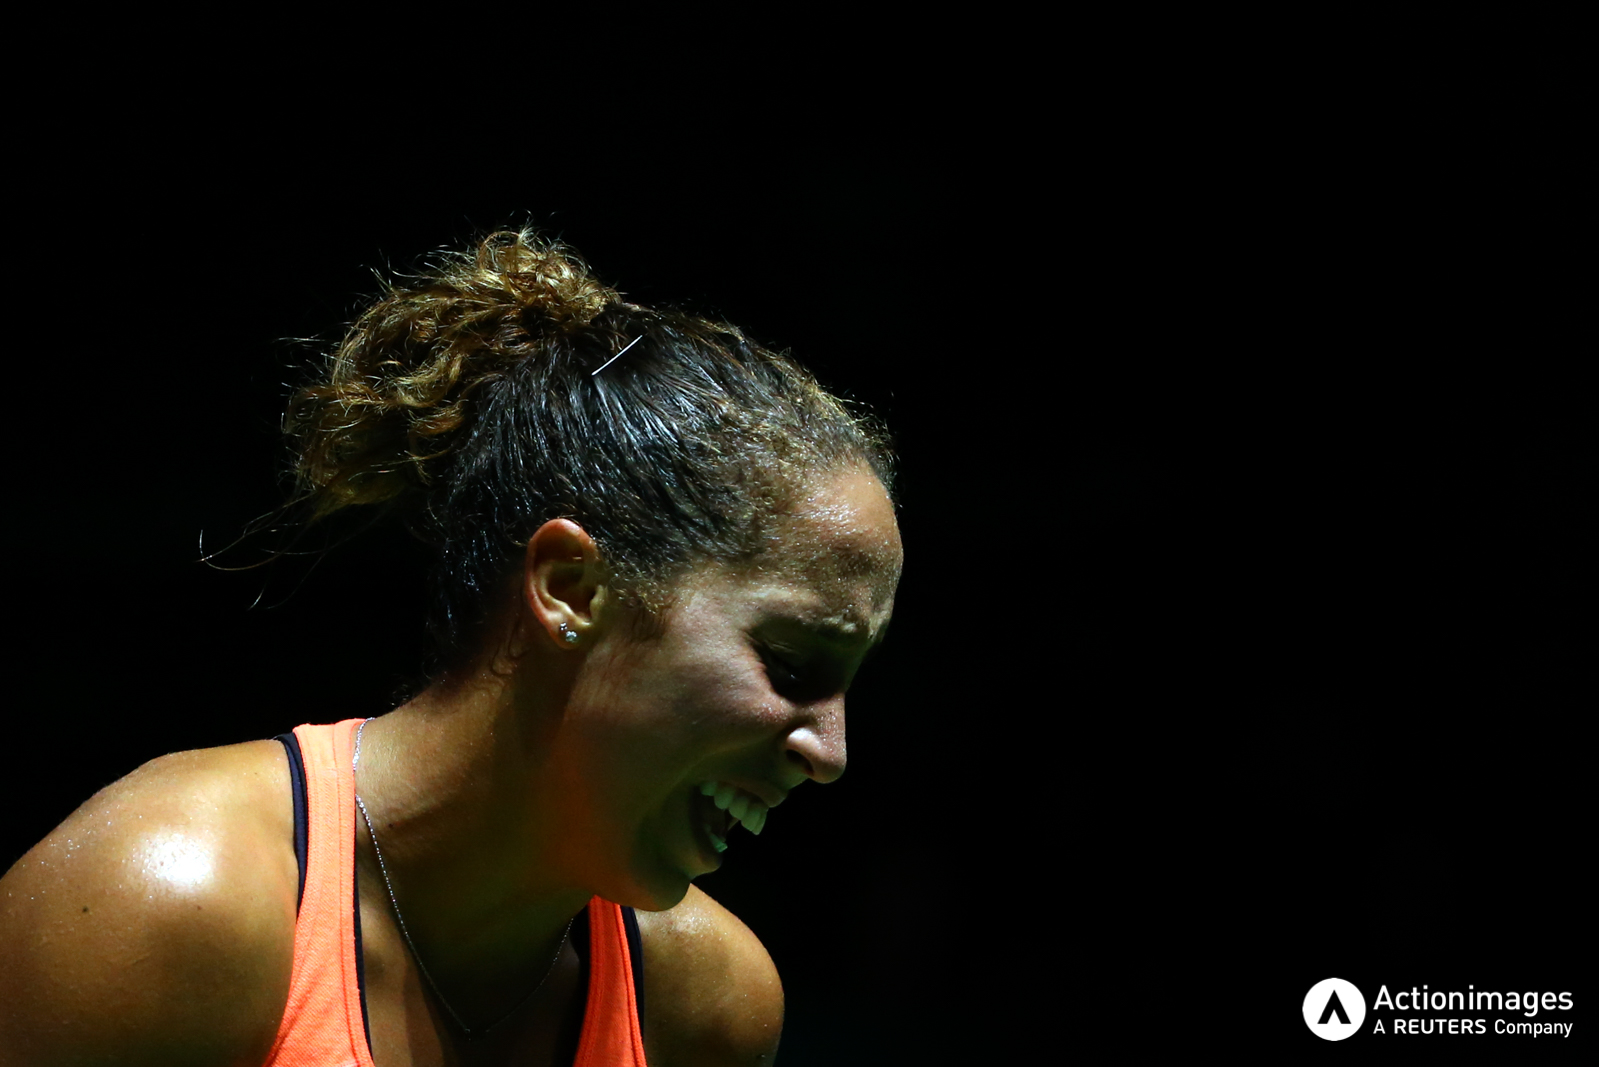 Tennis - BNP Paribas WTA Finals - Singapore Indoor Stadium - 27/10/16 USA's Madison Keys reacts during her round robin match Mandatory Credit: Action Images / Yong Teck Lim Livepic